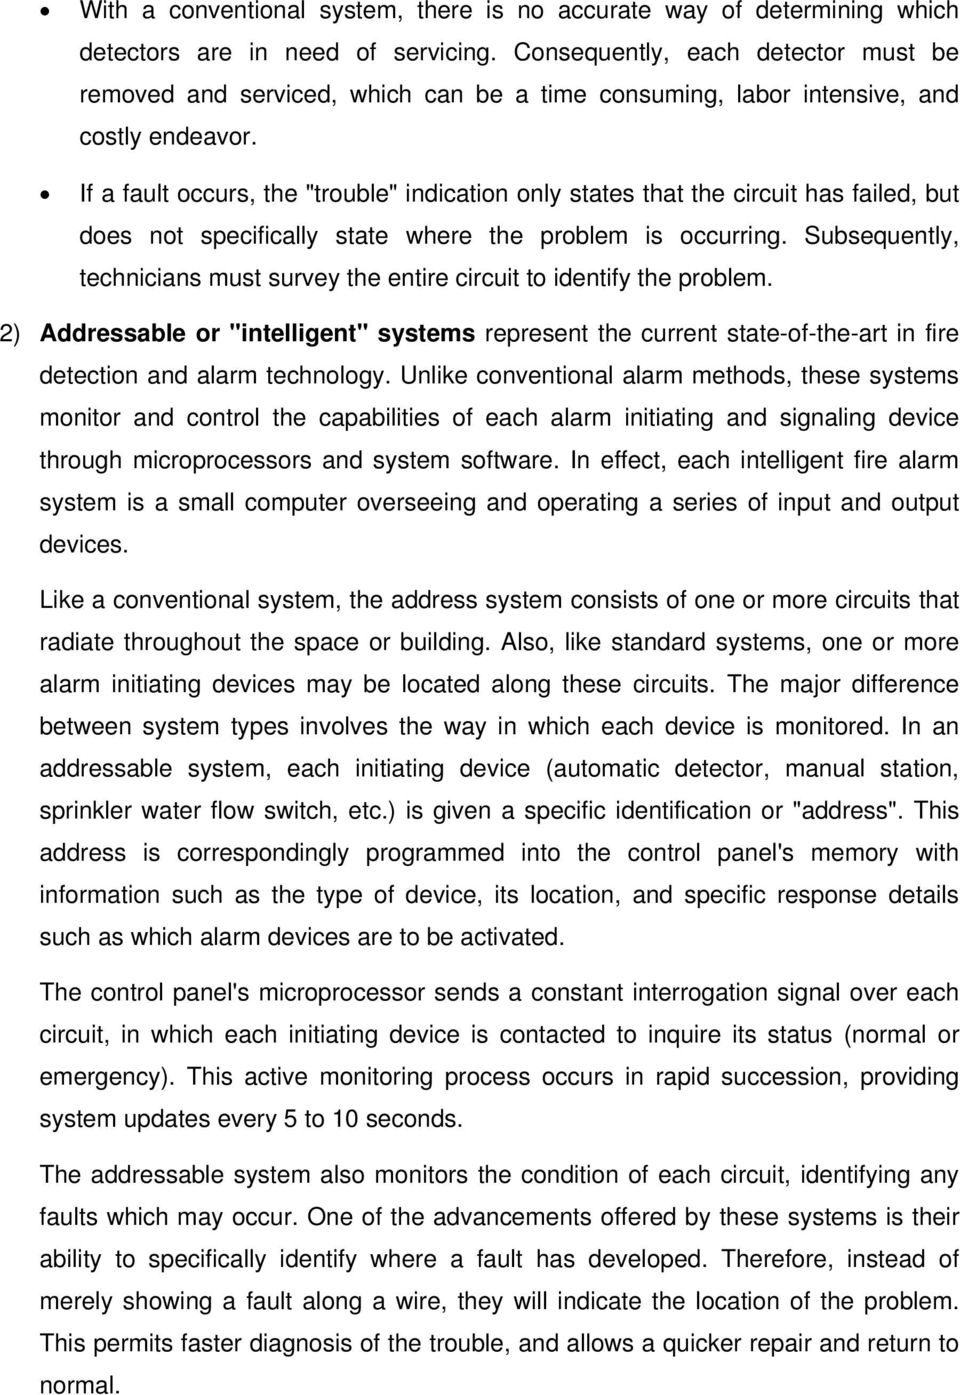 Overview Of Fire Alarm And Detection Systems Pdf Intelligent System Schematic Diagram If A Fault Occurs The Trouble Indication Only States That Circuit Has